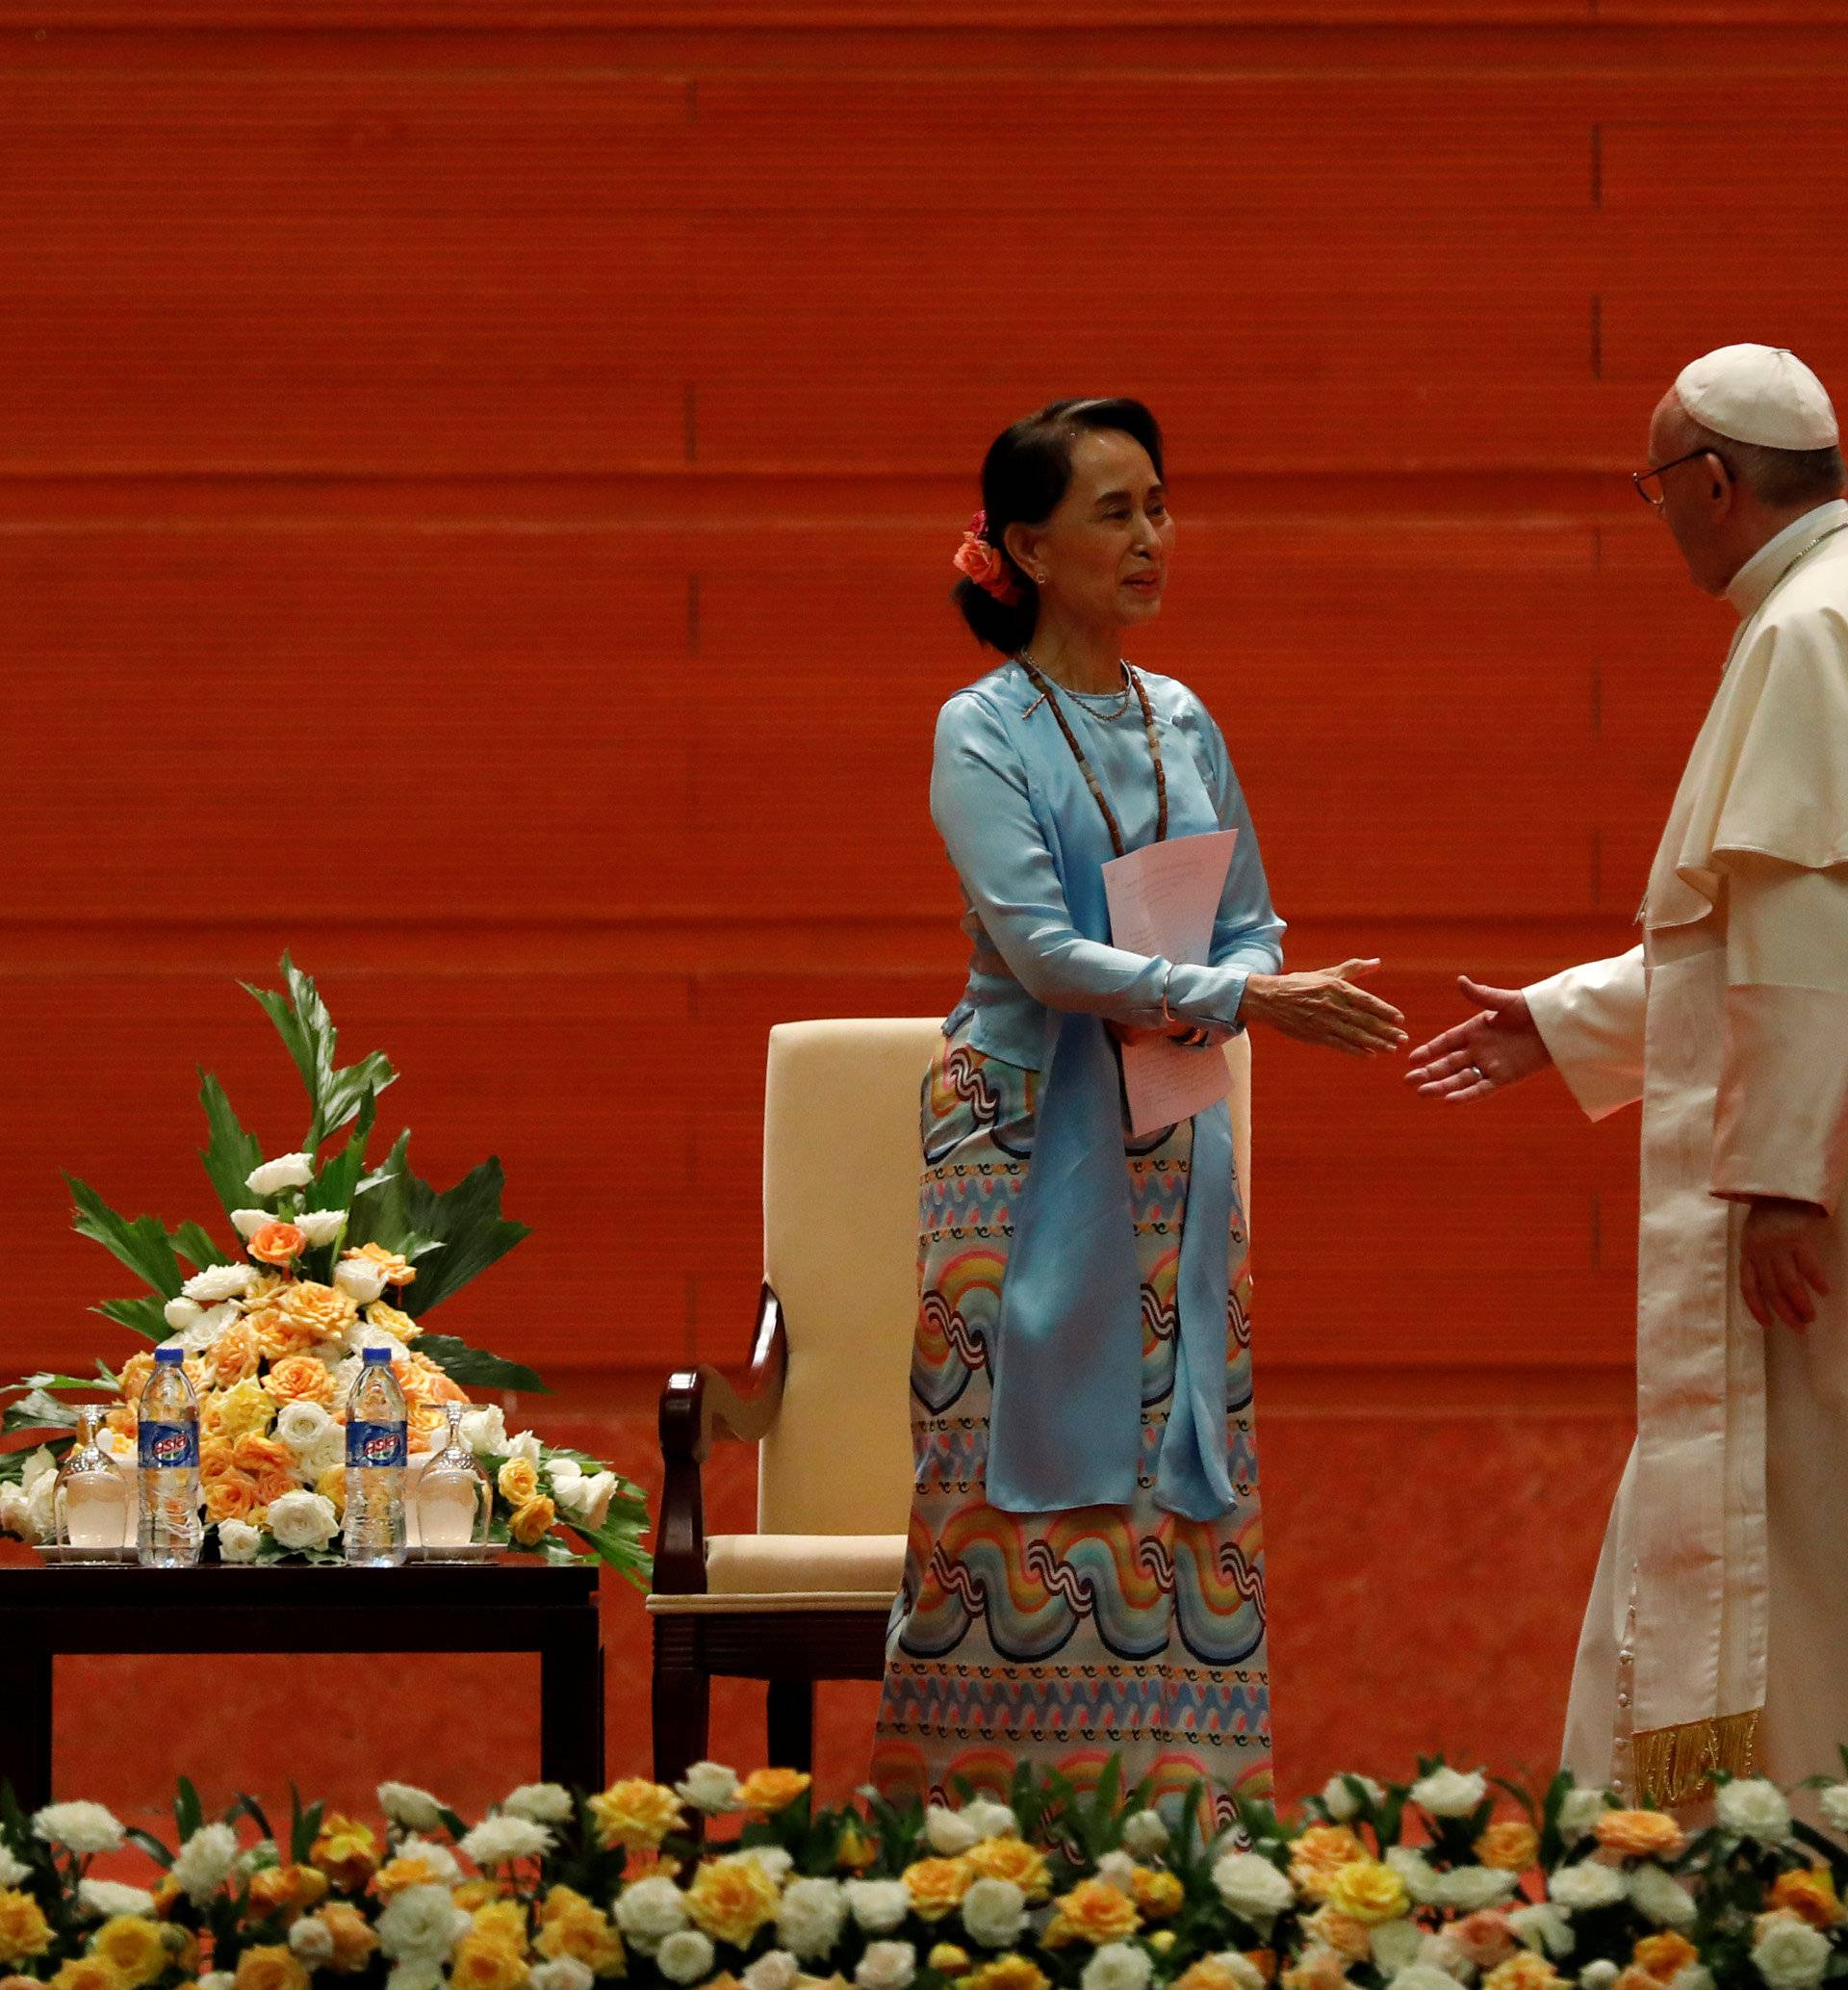 Pope Francis and Myanmars State Counsellor Aung San Suu Kyi shade hand as they attend a meeting with members of the civil society and diplomatic corps in Naypyitaw